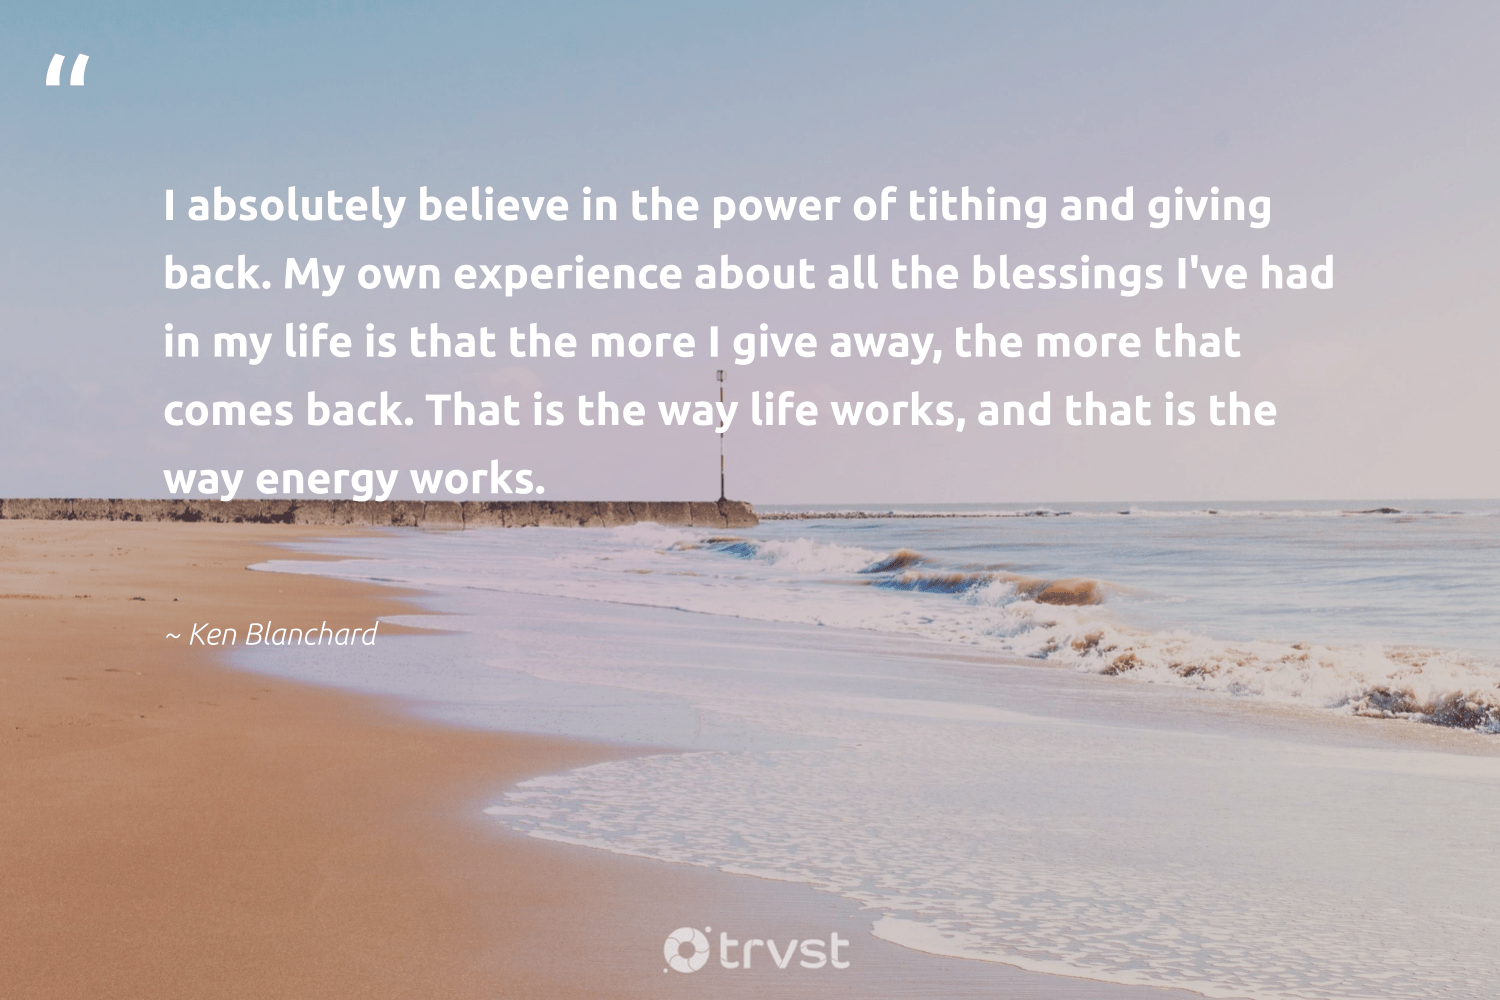 """""""I absolutely believe in the power of tithing and giving back. My own experience about all the blessings I've had in my life is that the more I give away, the more that comes back. That is the way life works, and that is the way energy works.""""  - Ken Blanchard #trvst #quotes #givingback #energy #socialgood #giveback #giveforthefuture #changemakers #socialimpact #dogood #itscooltobekind #togetherwecan"""